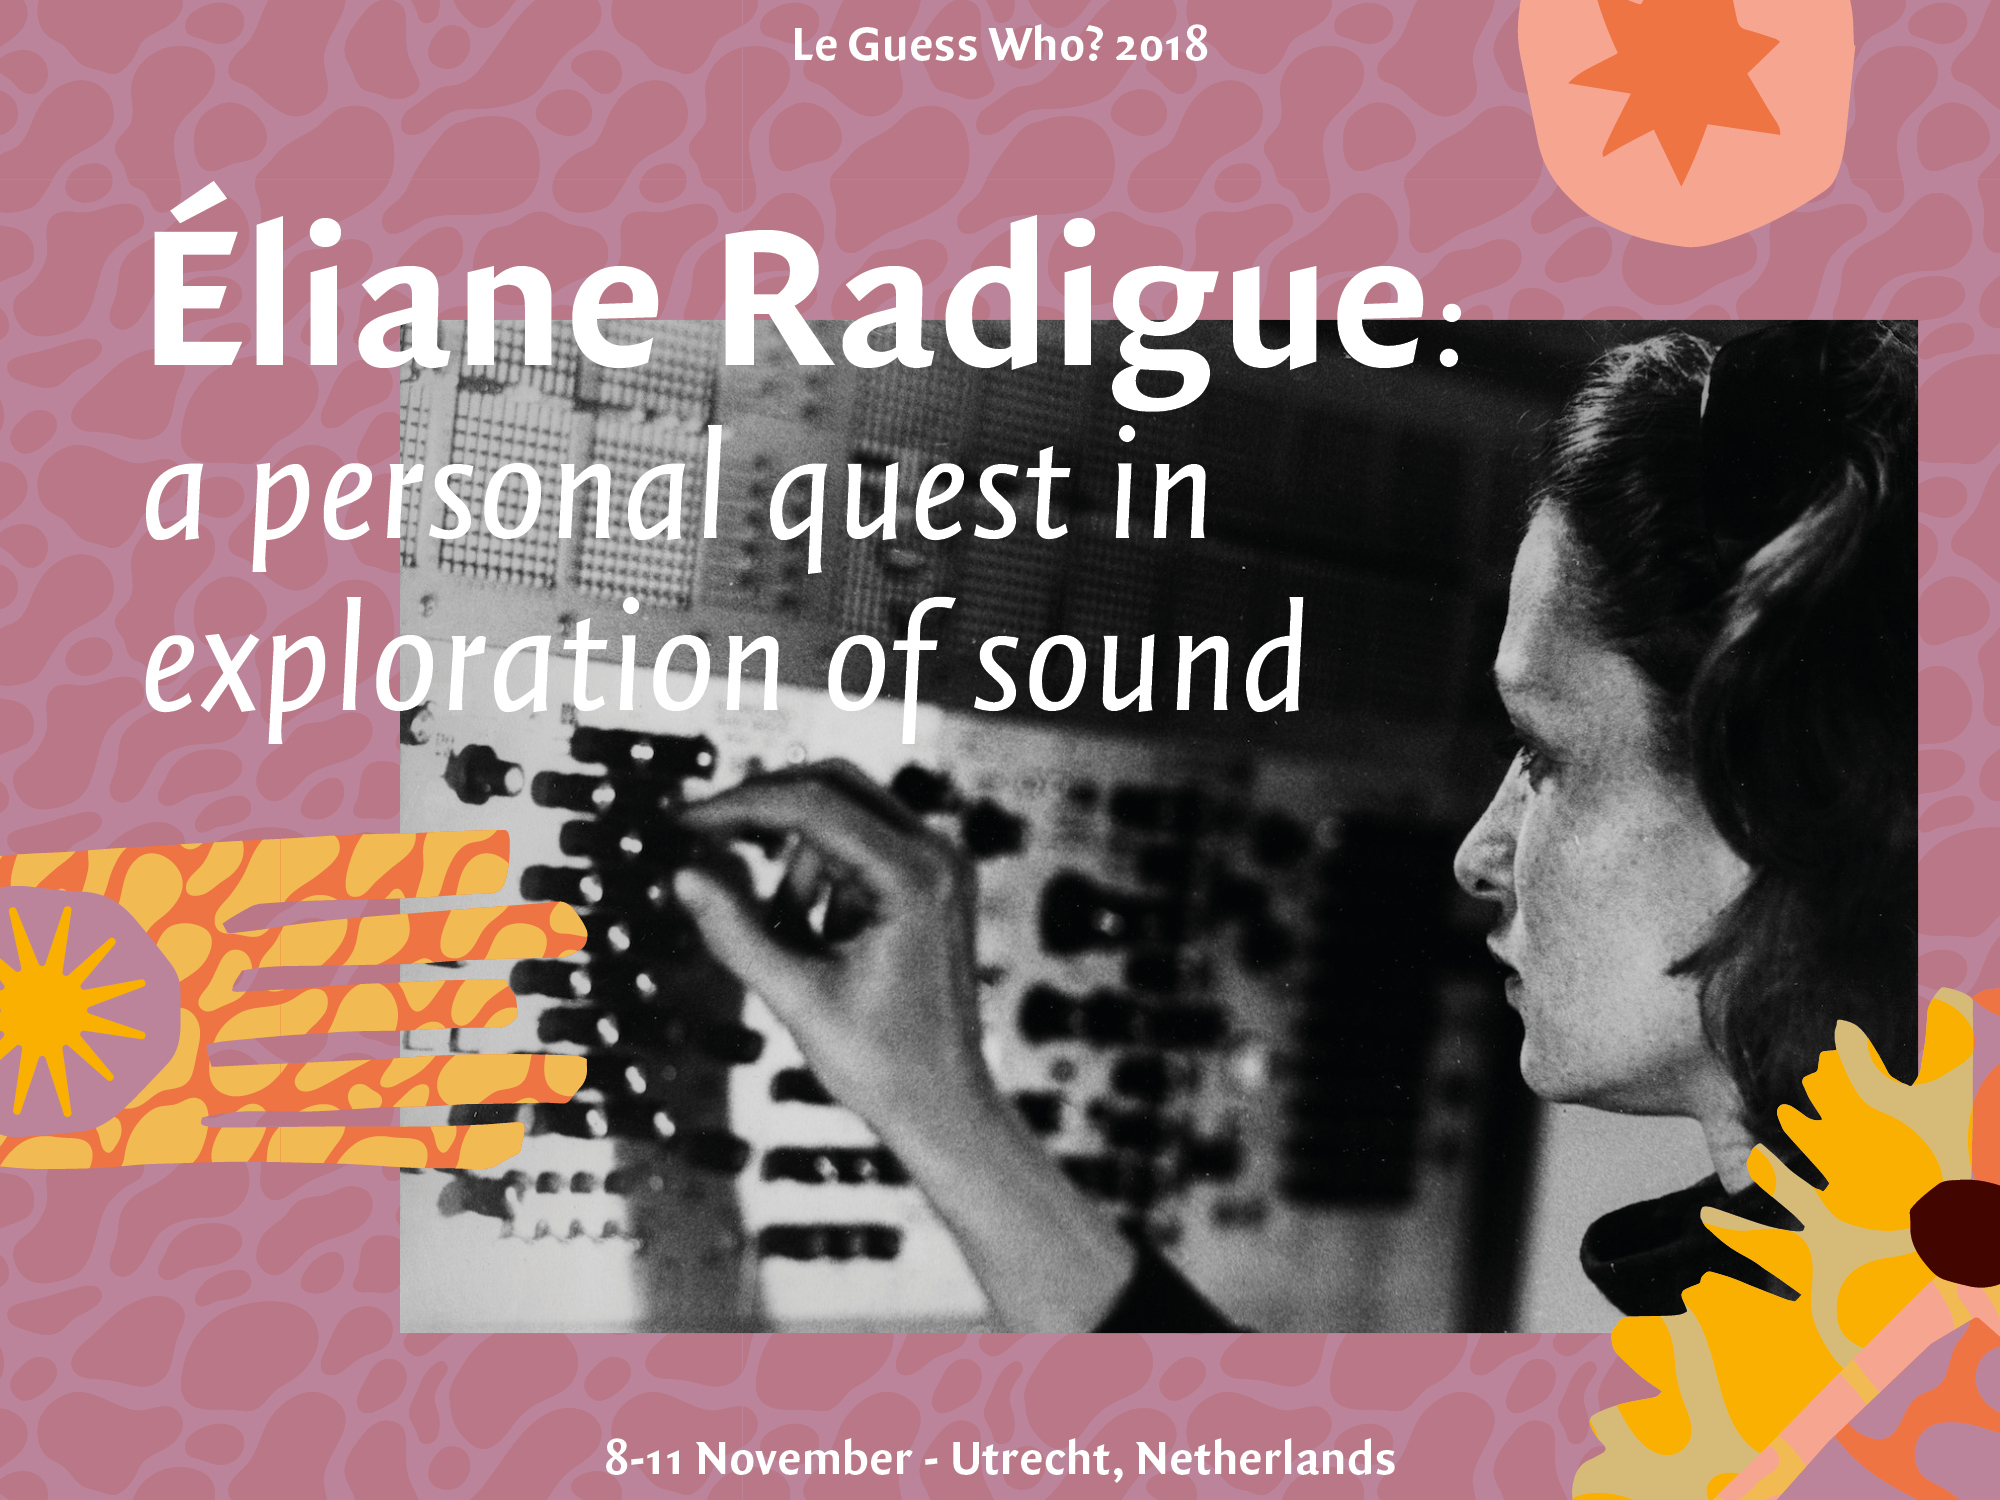 Éliane Radigue: a personal quest in exploration of sound